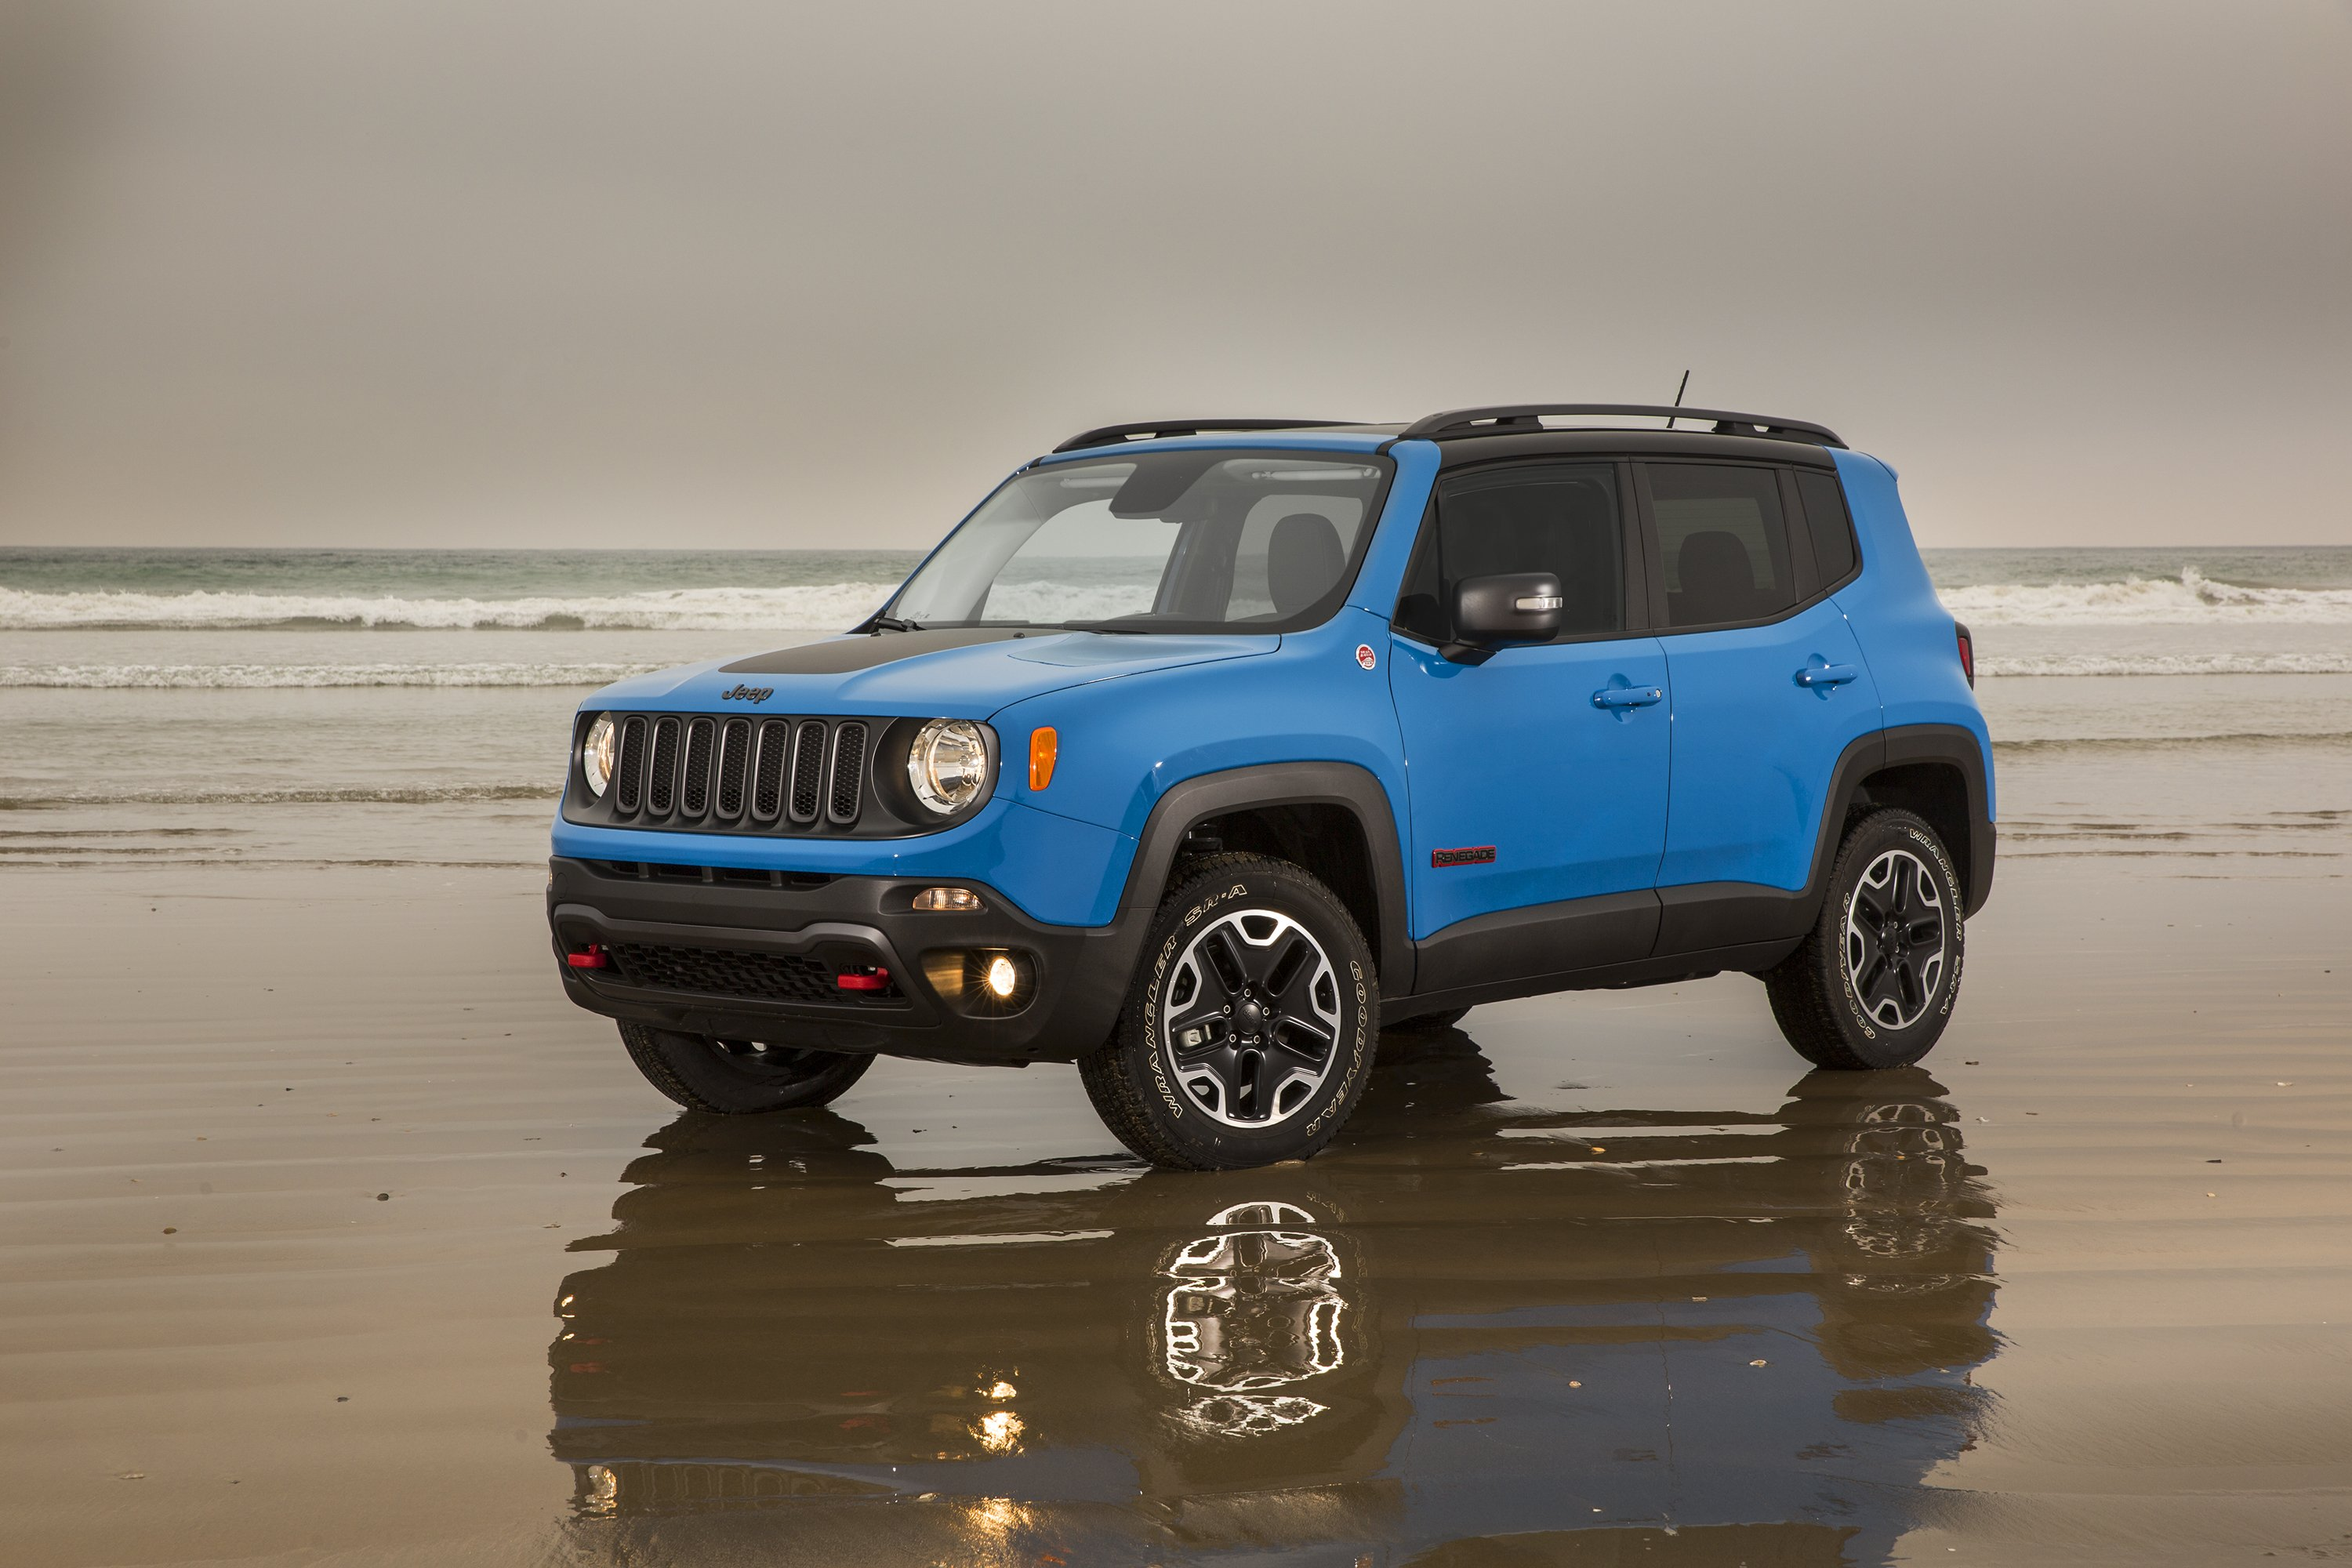 2015 jeep renegade trailhawk suv 4x4 wallpaper 3000x2000 618836 wallpaperup. Black Bedroom Furniture Sets. Home Design Ideas